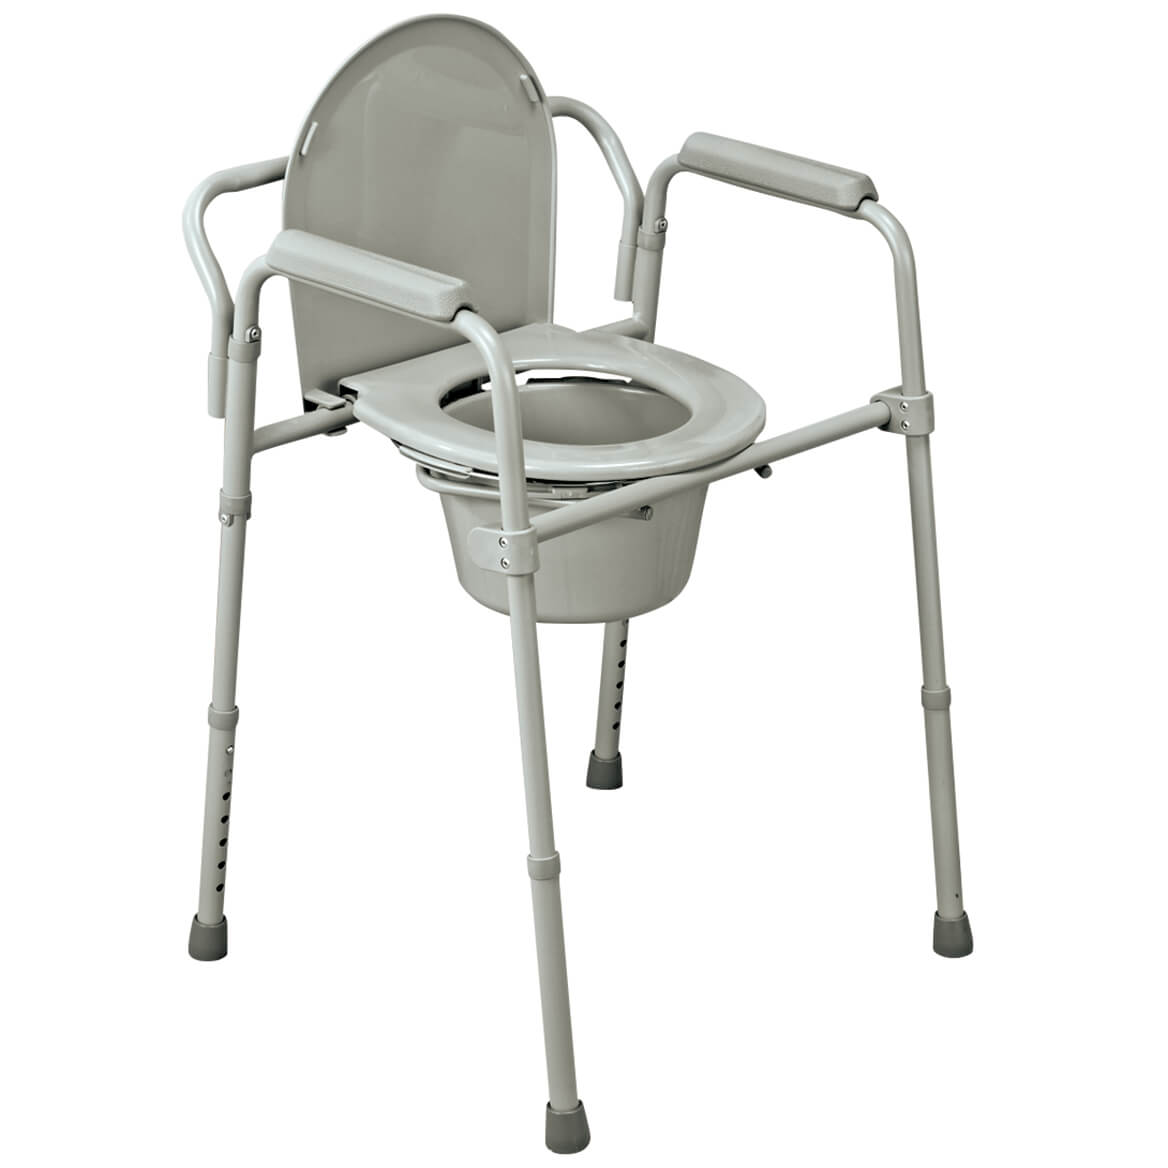 Bedside Commode Chair Folding Commode Portable Toilet And Bedside Commode Chair Includes Splash Guard Bucket Lid Cover